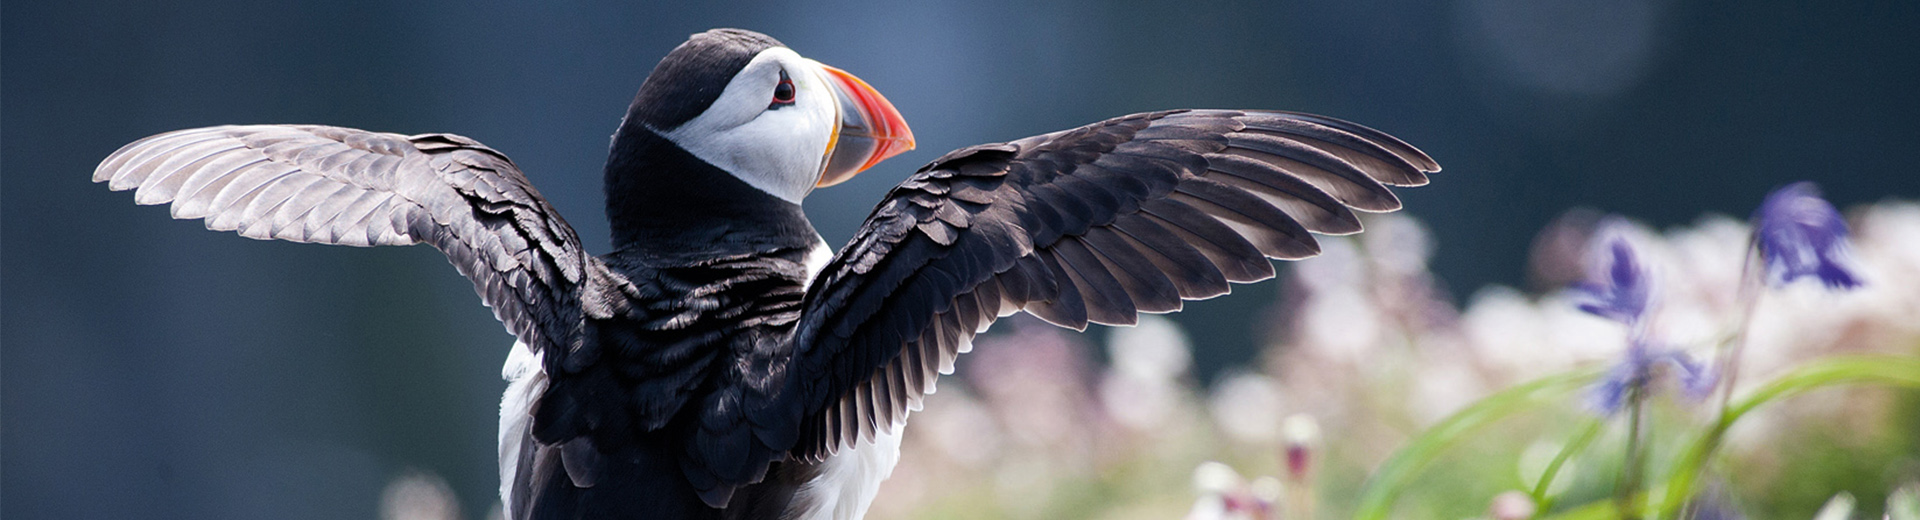 Puffin stretching wings